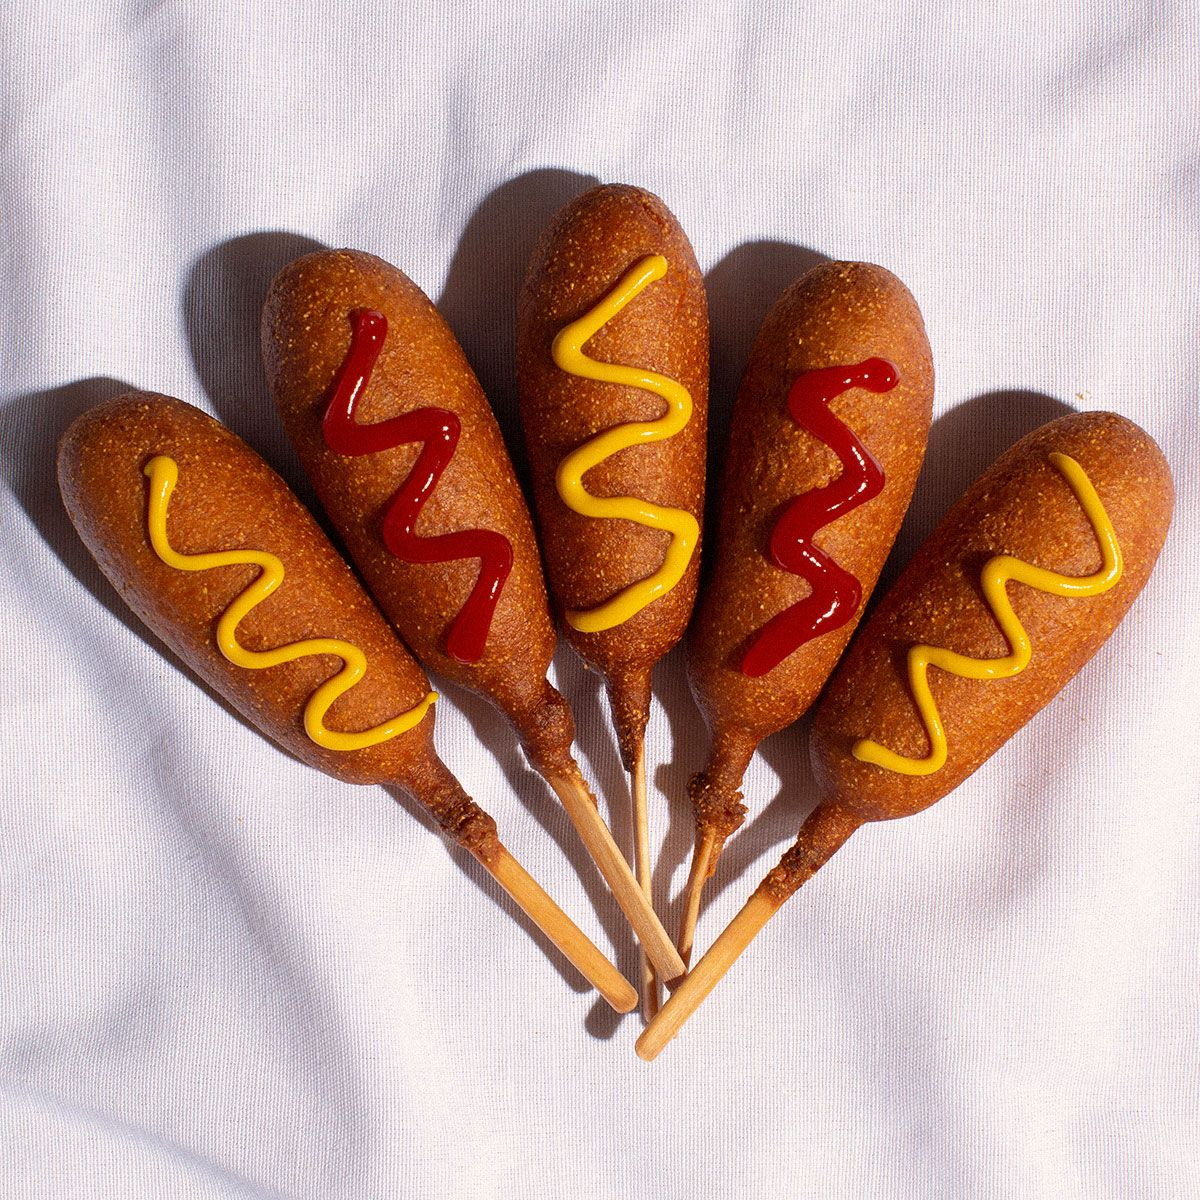 Krystal Celebrates National Corn Dog Day With a Hot Dog of a Deal, 50 Cent Corn Pups on March 20